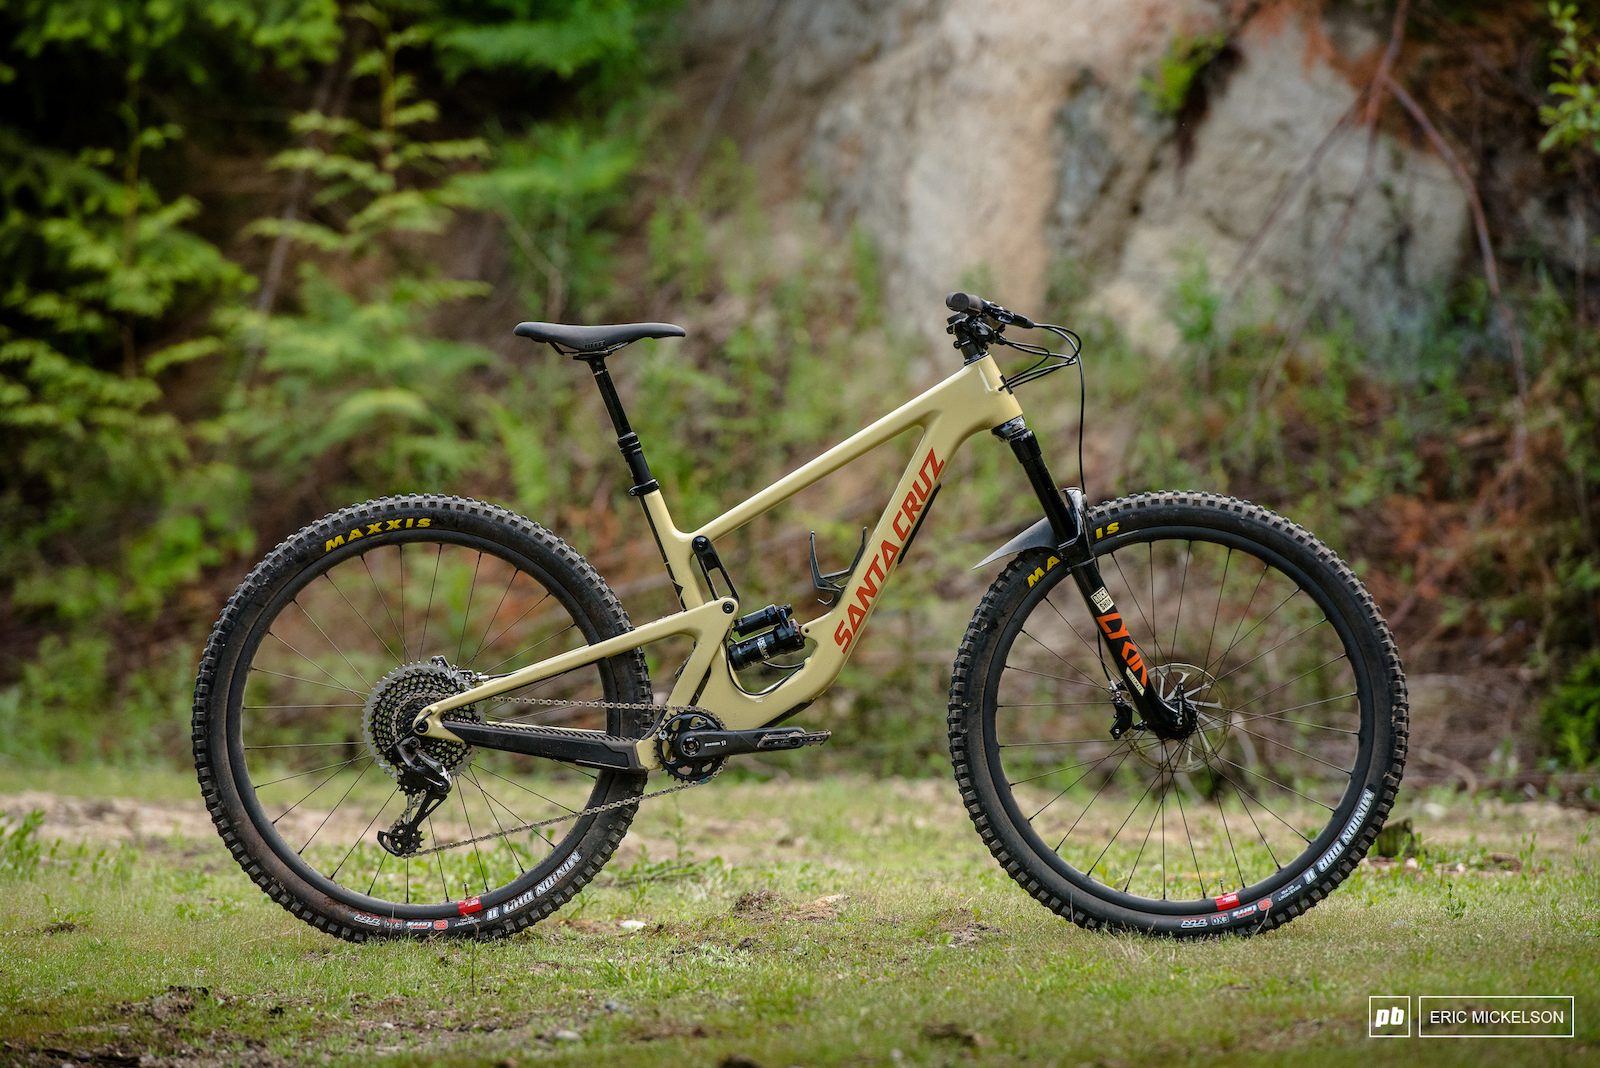 5338a70a2d9 Review: The 2020 Santa Cruz Hightower Gets a New Look & More Travel ...